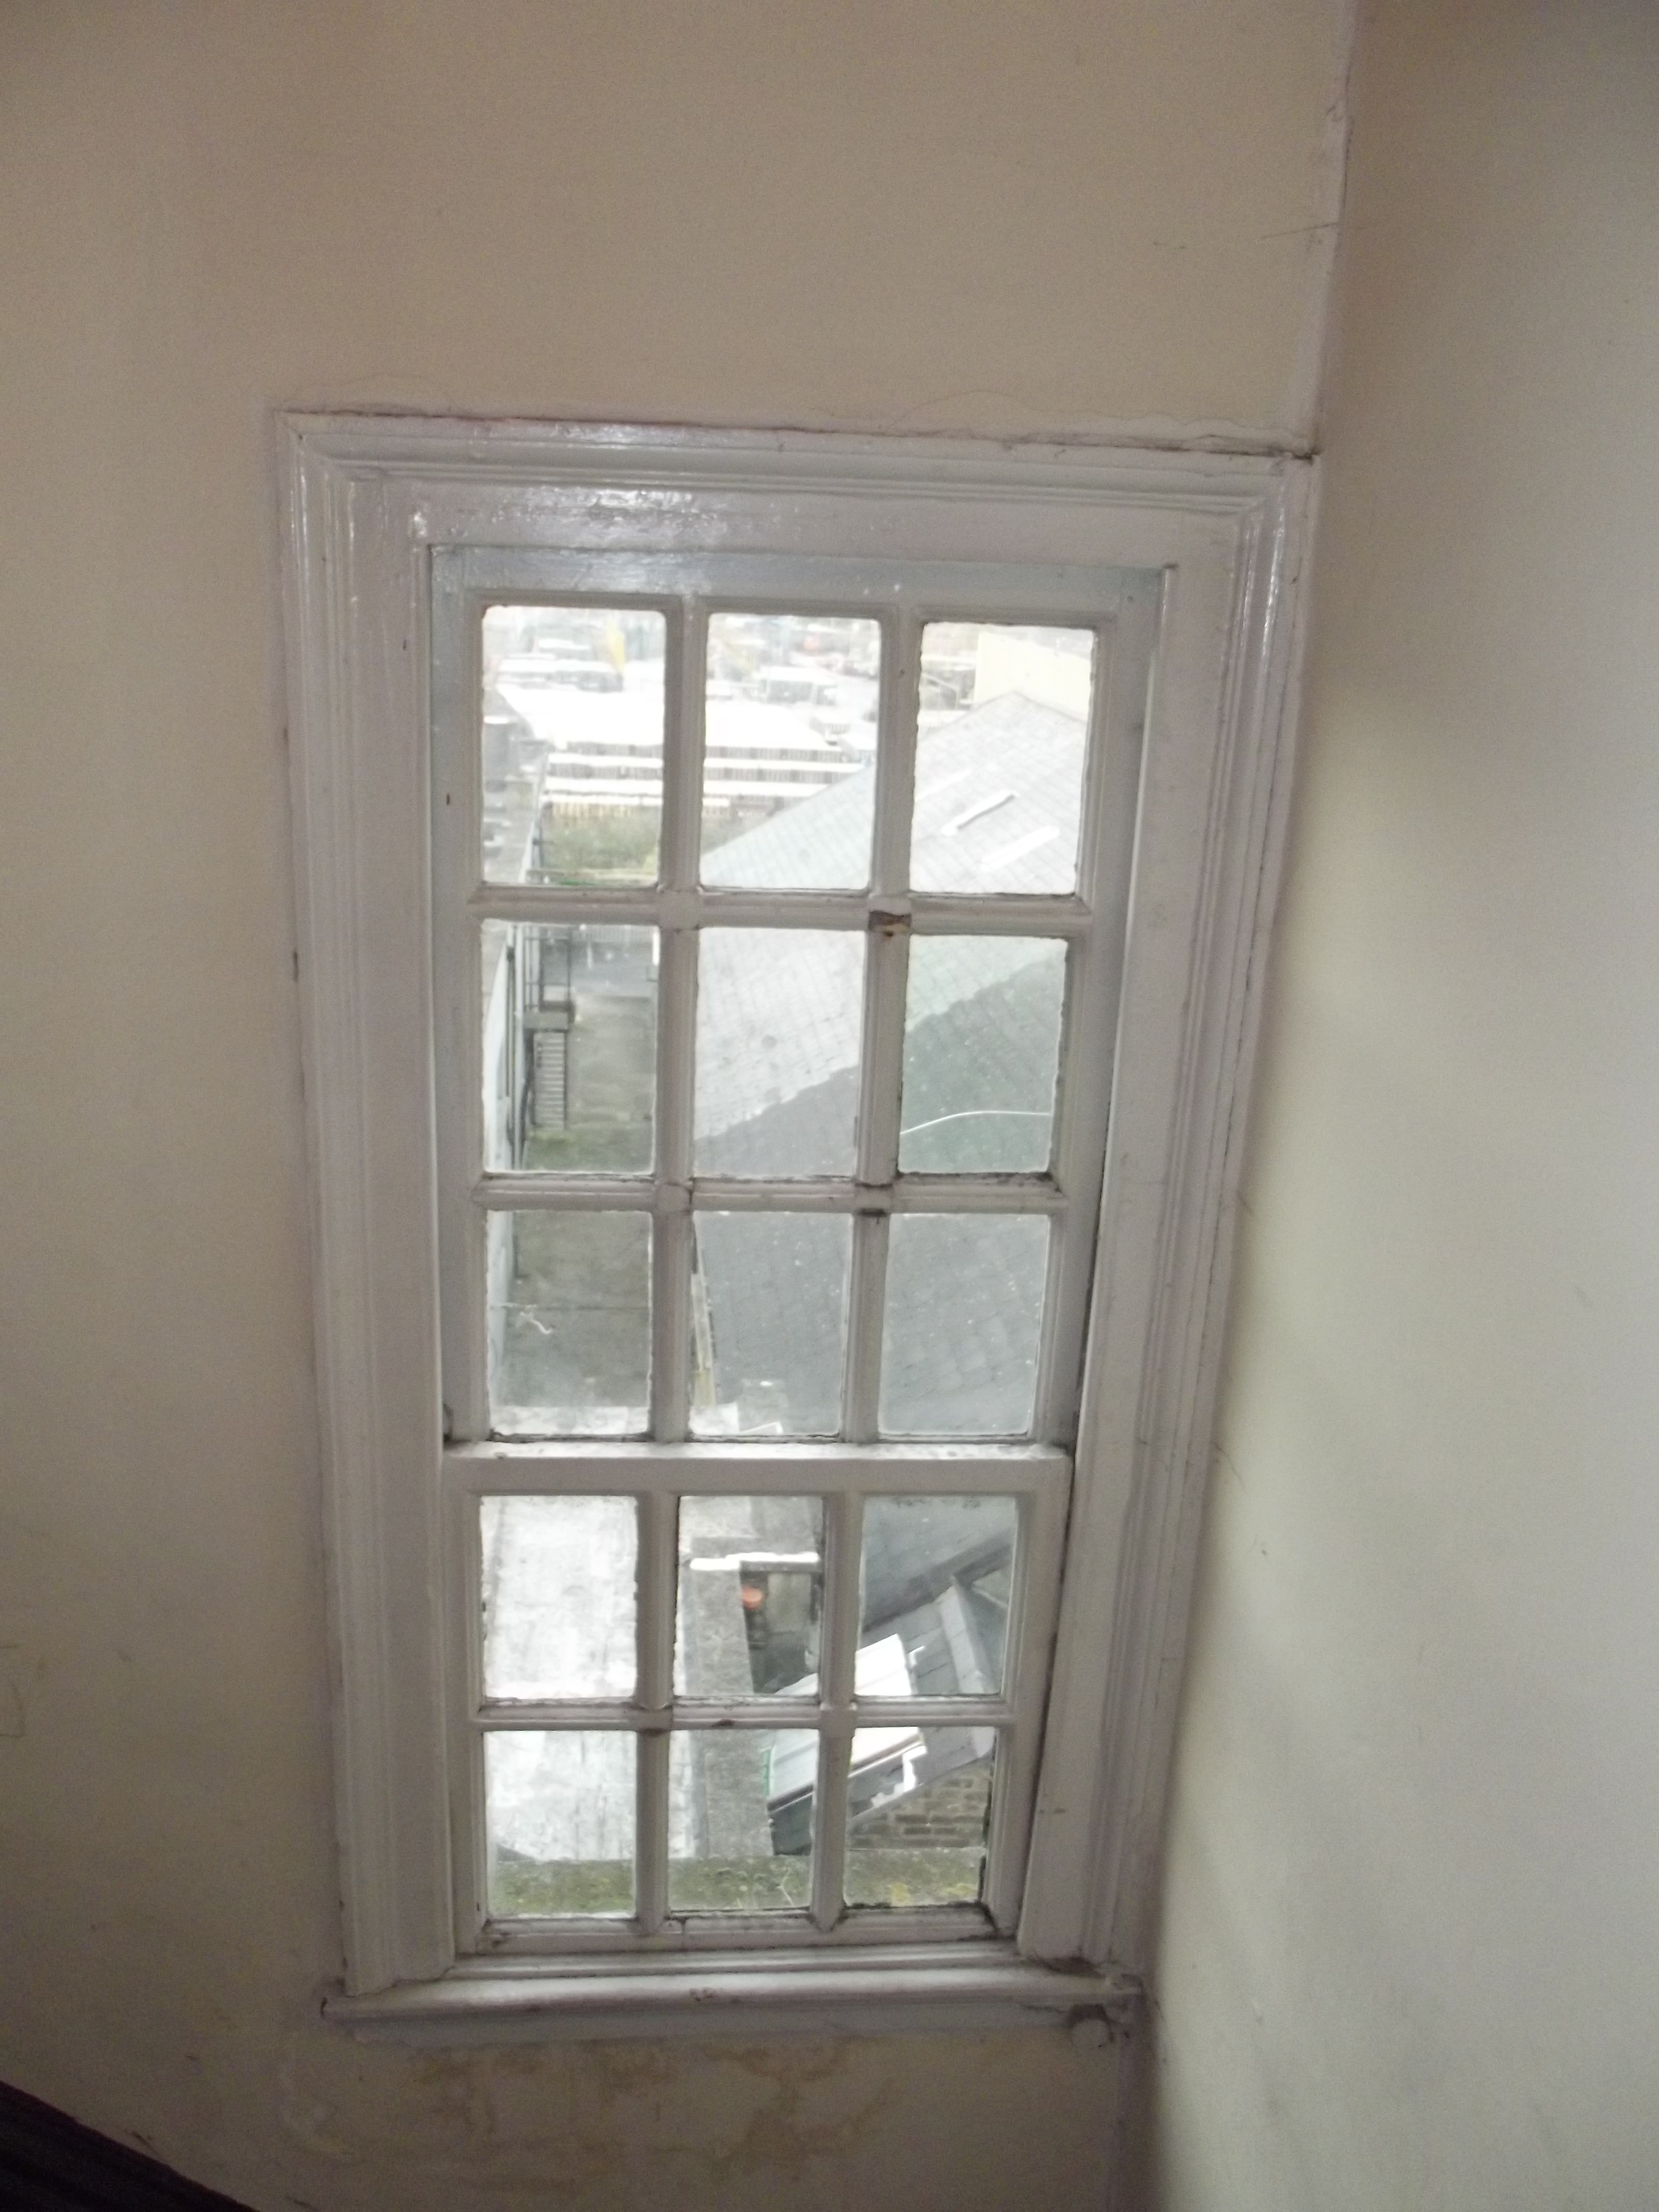 Window to stairwell